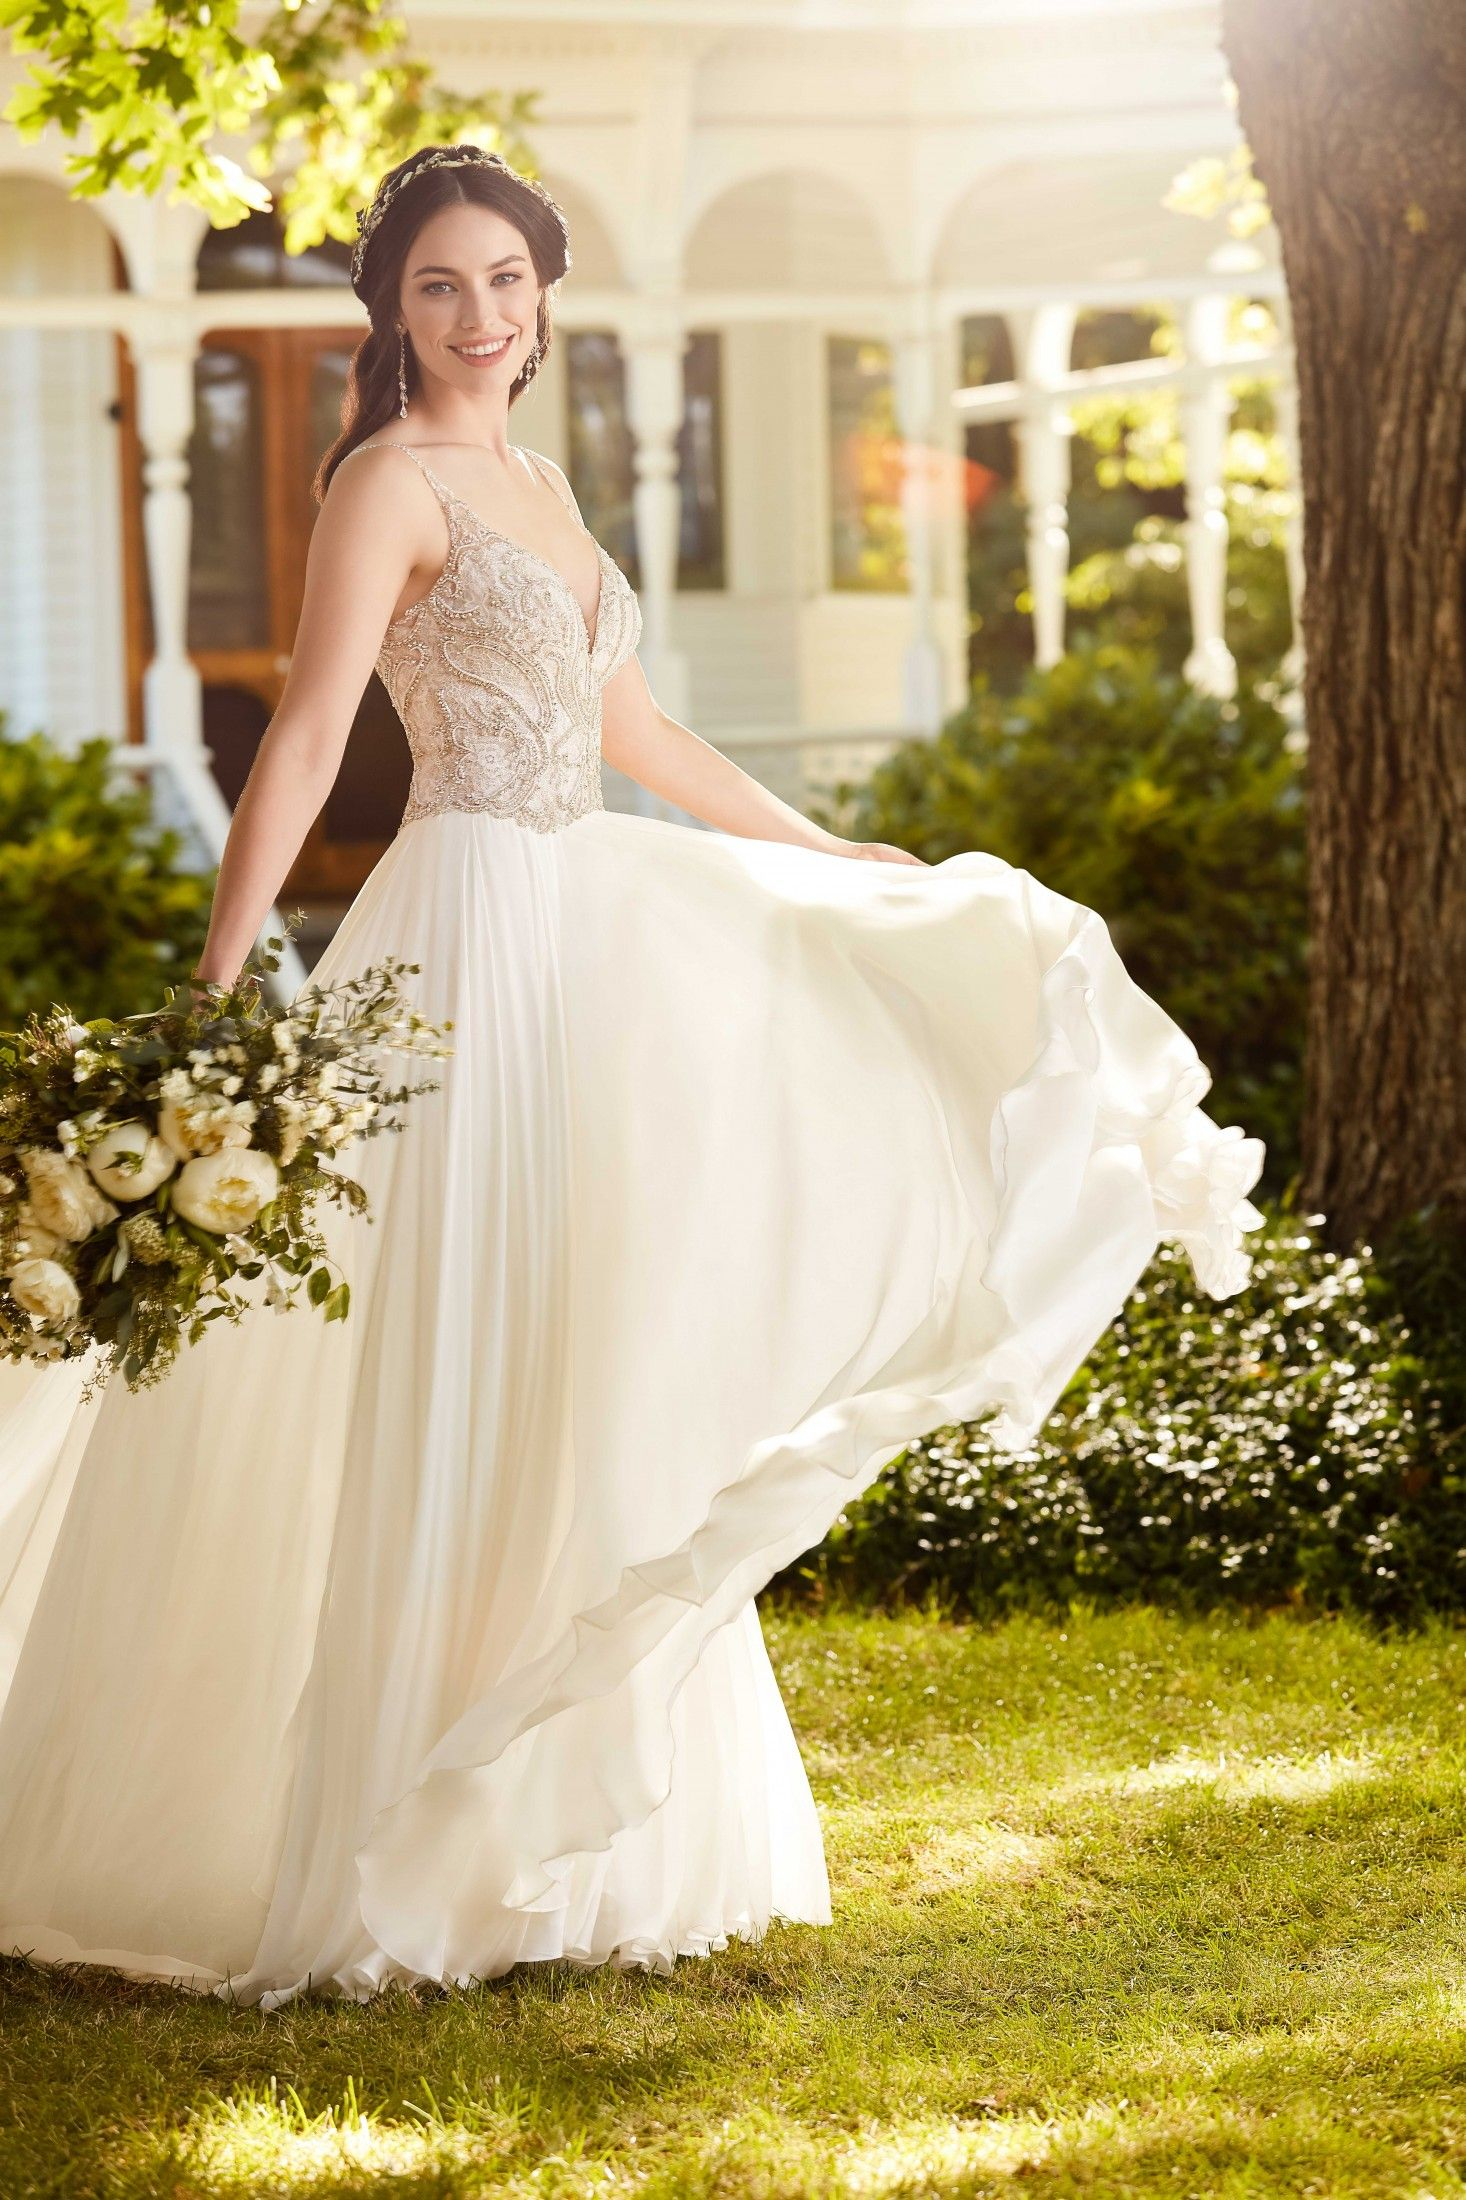 Ad decisions decisions click to find your dream wedding dress at